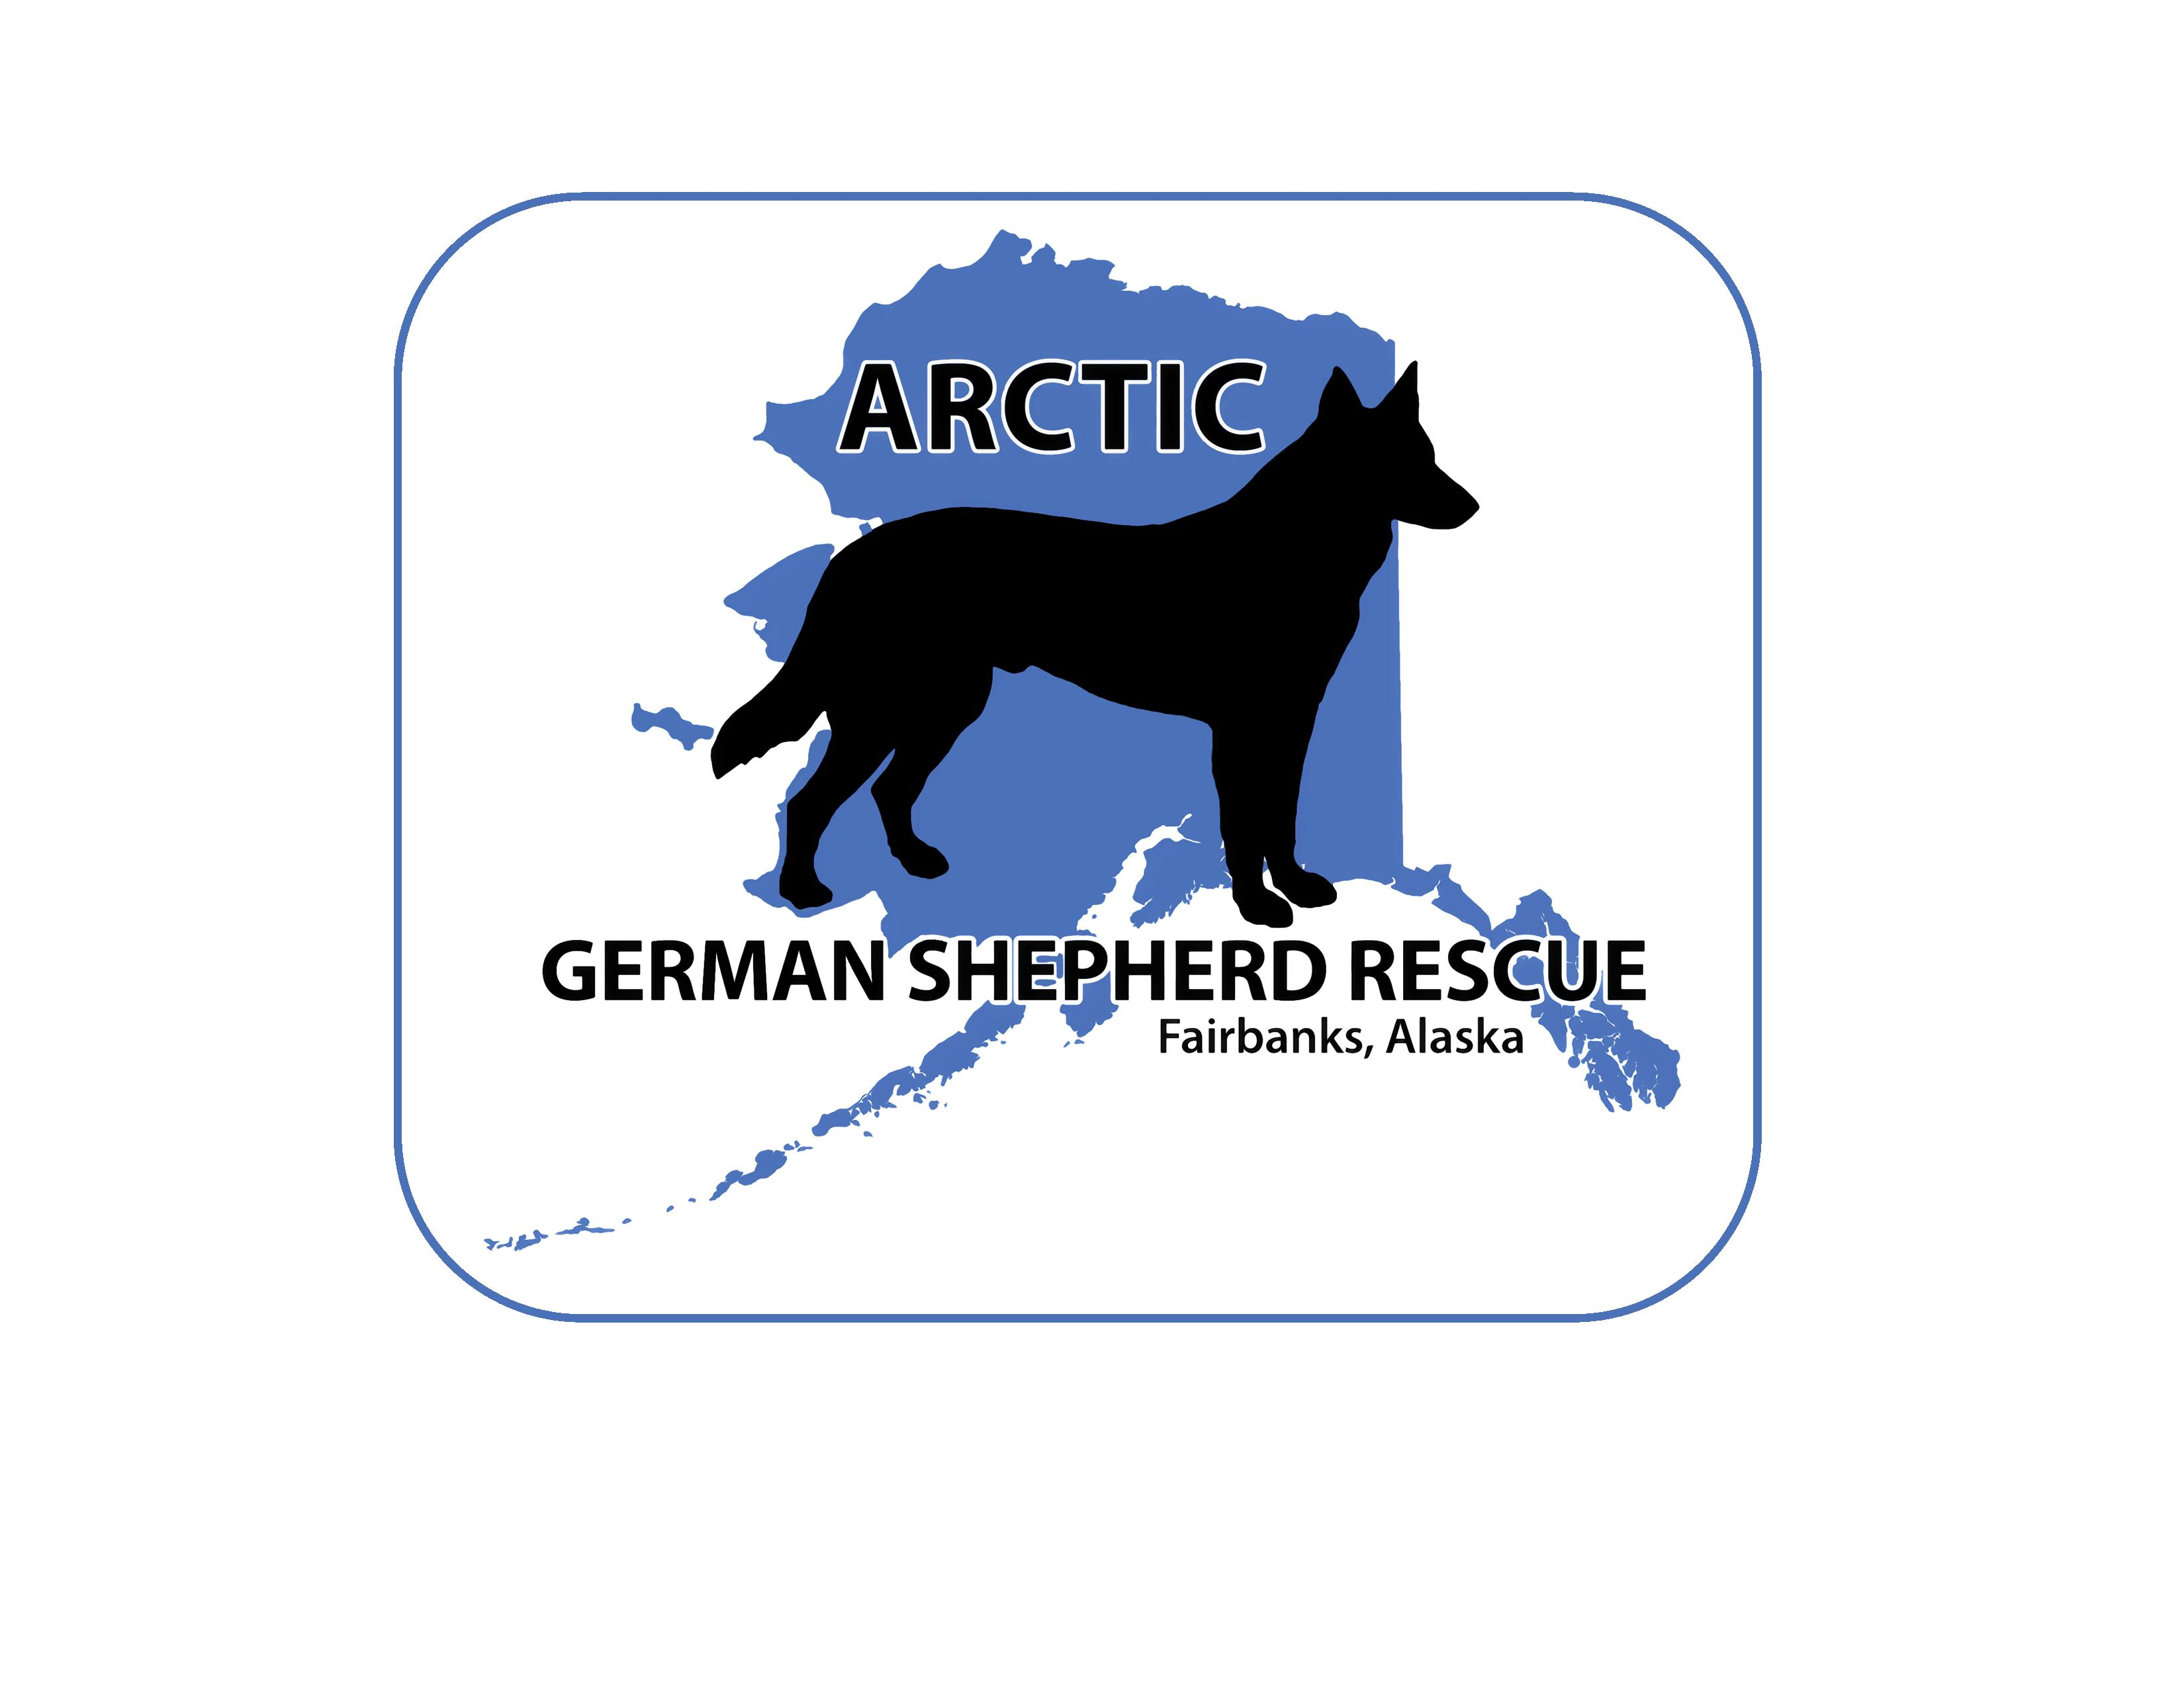 Arctic German Shepherd Rescue